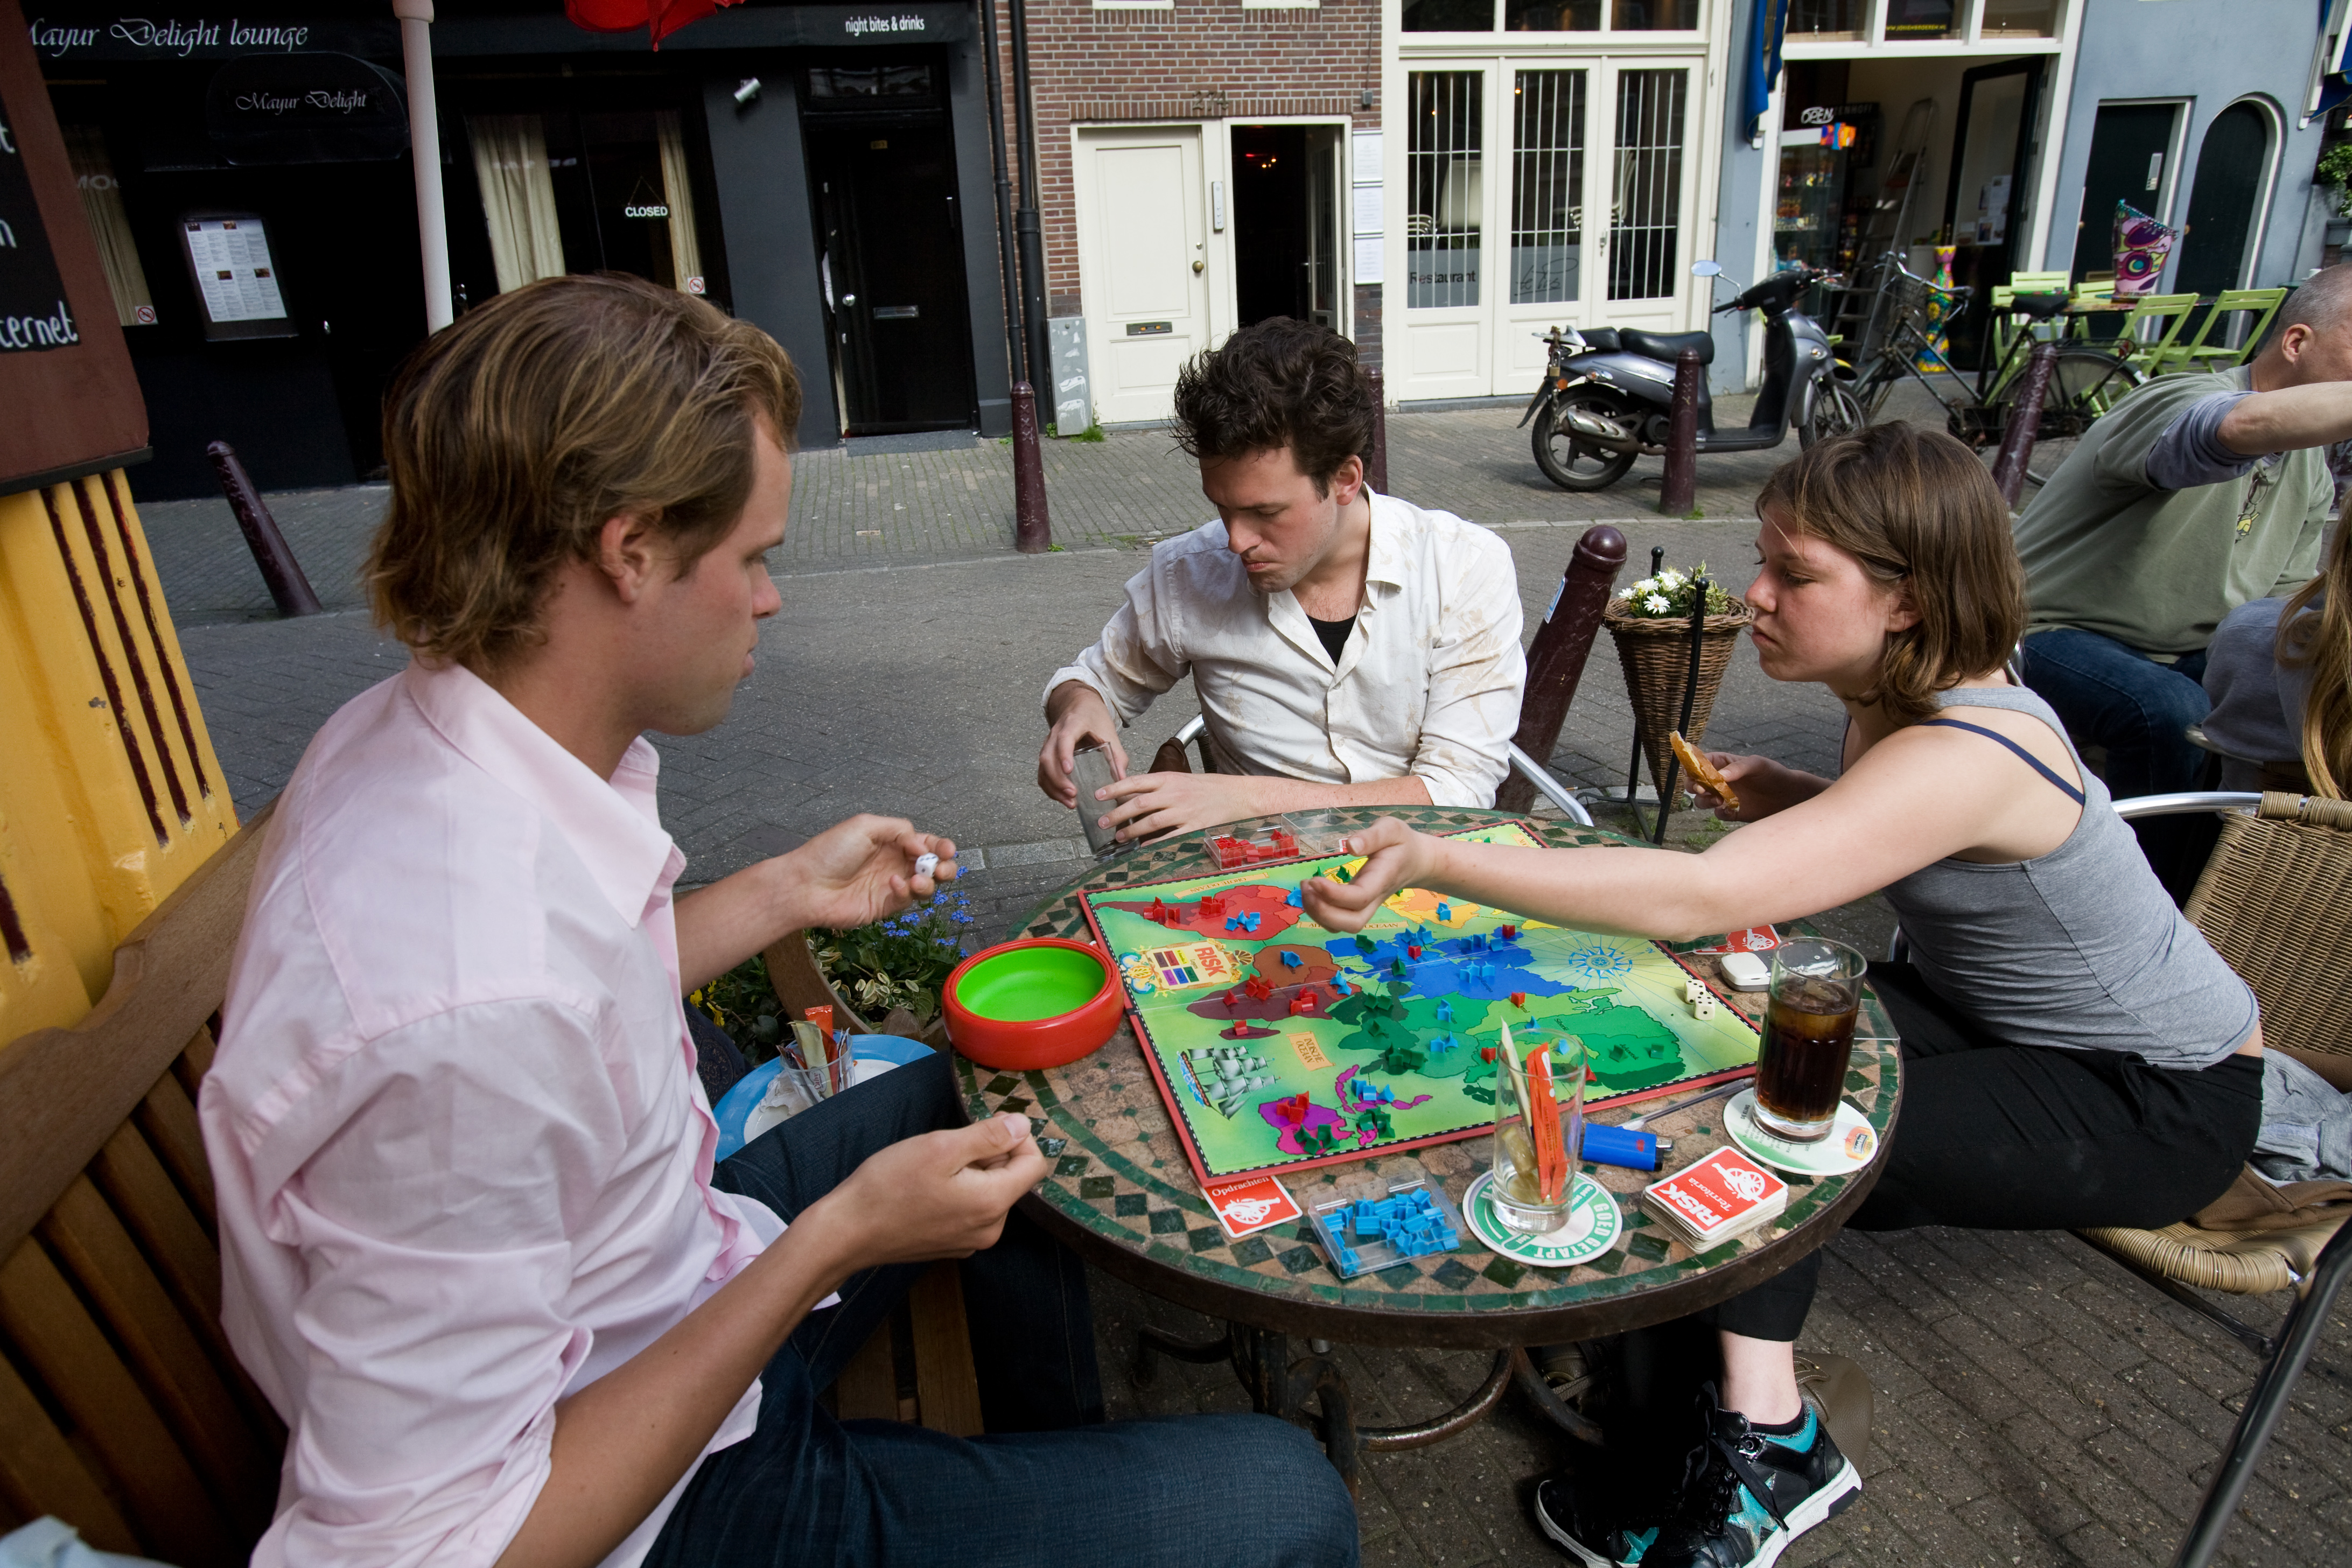 File:Amsterdam - Risk players - 1136.jpg - Wikimedia Commons